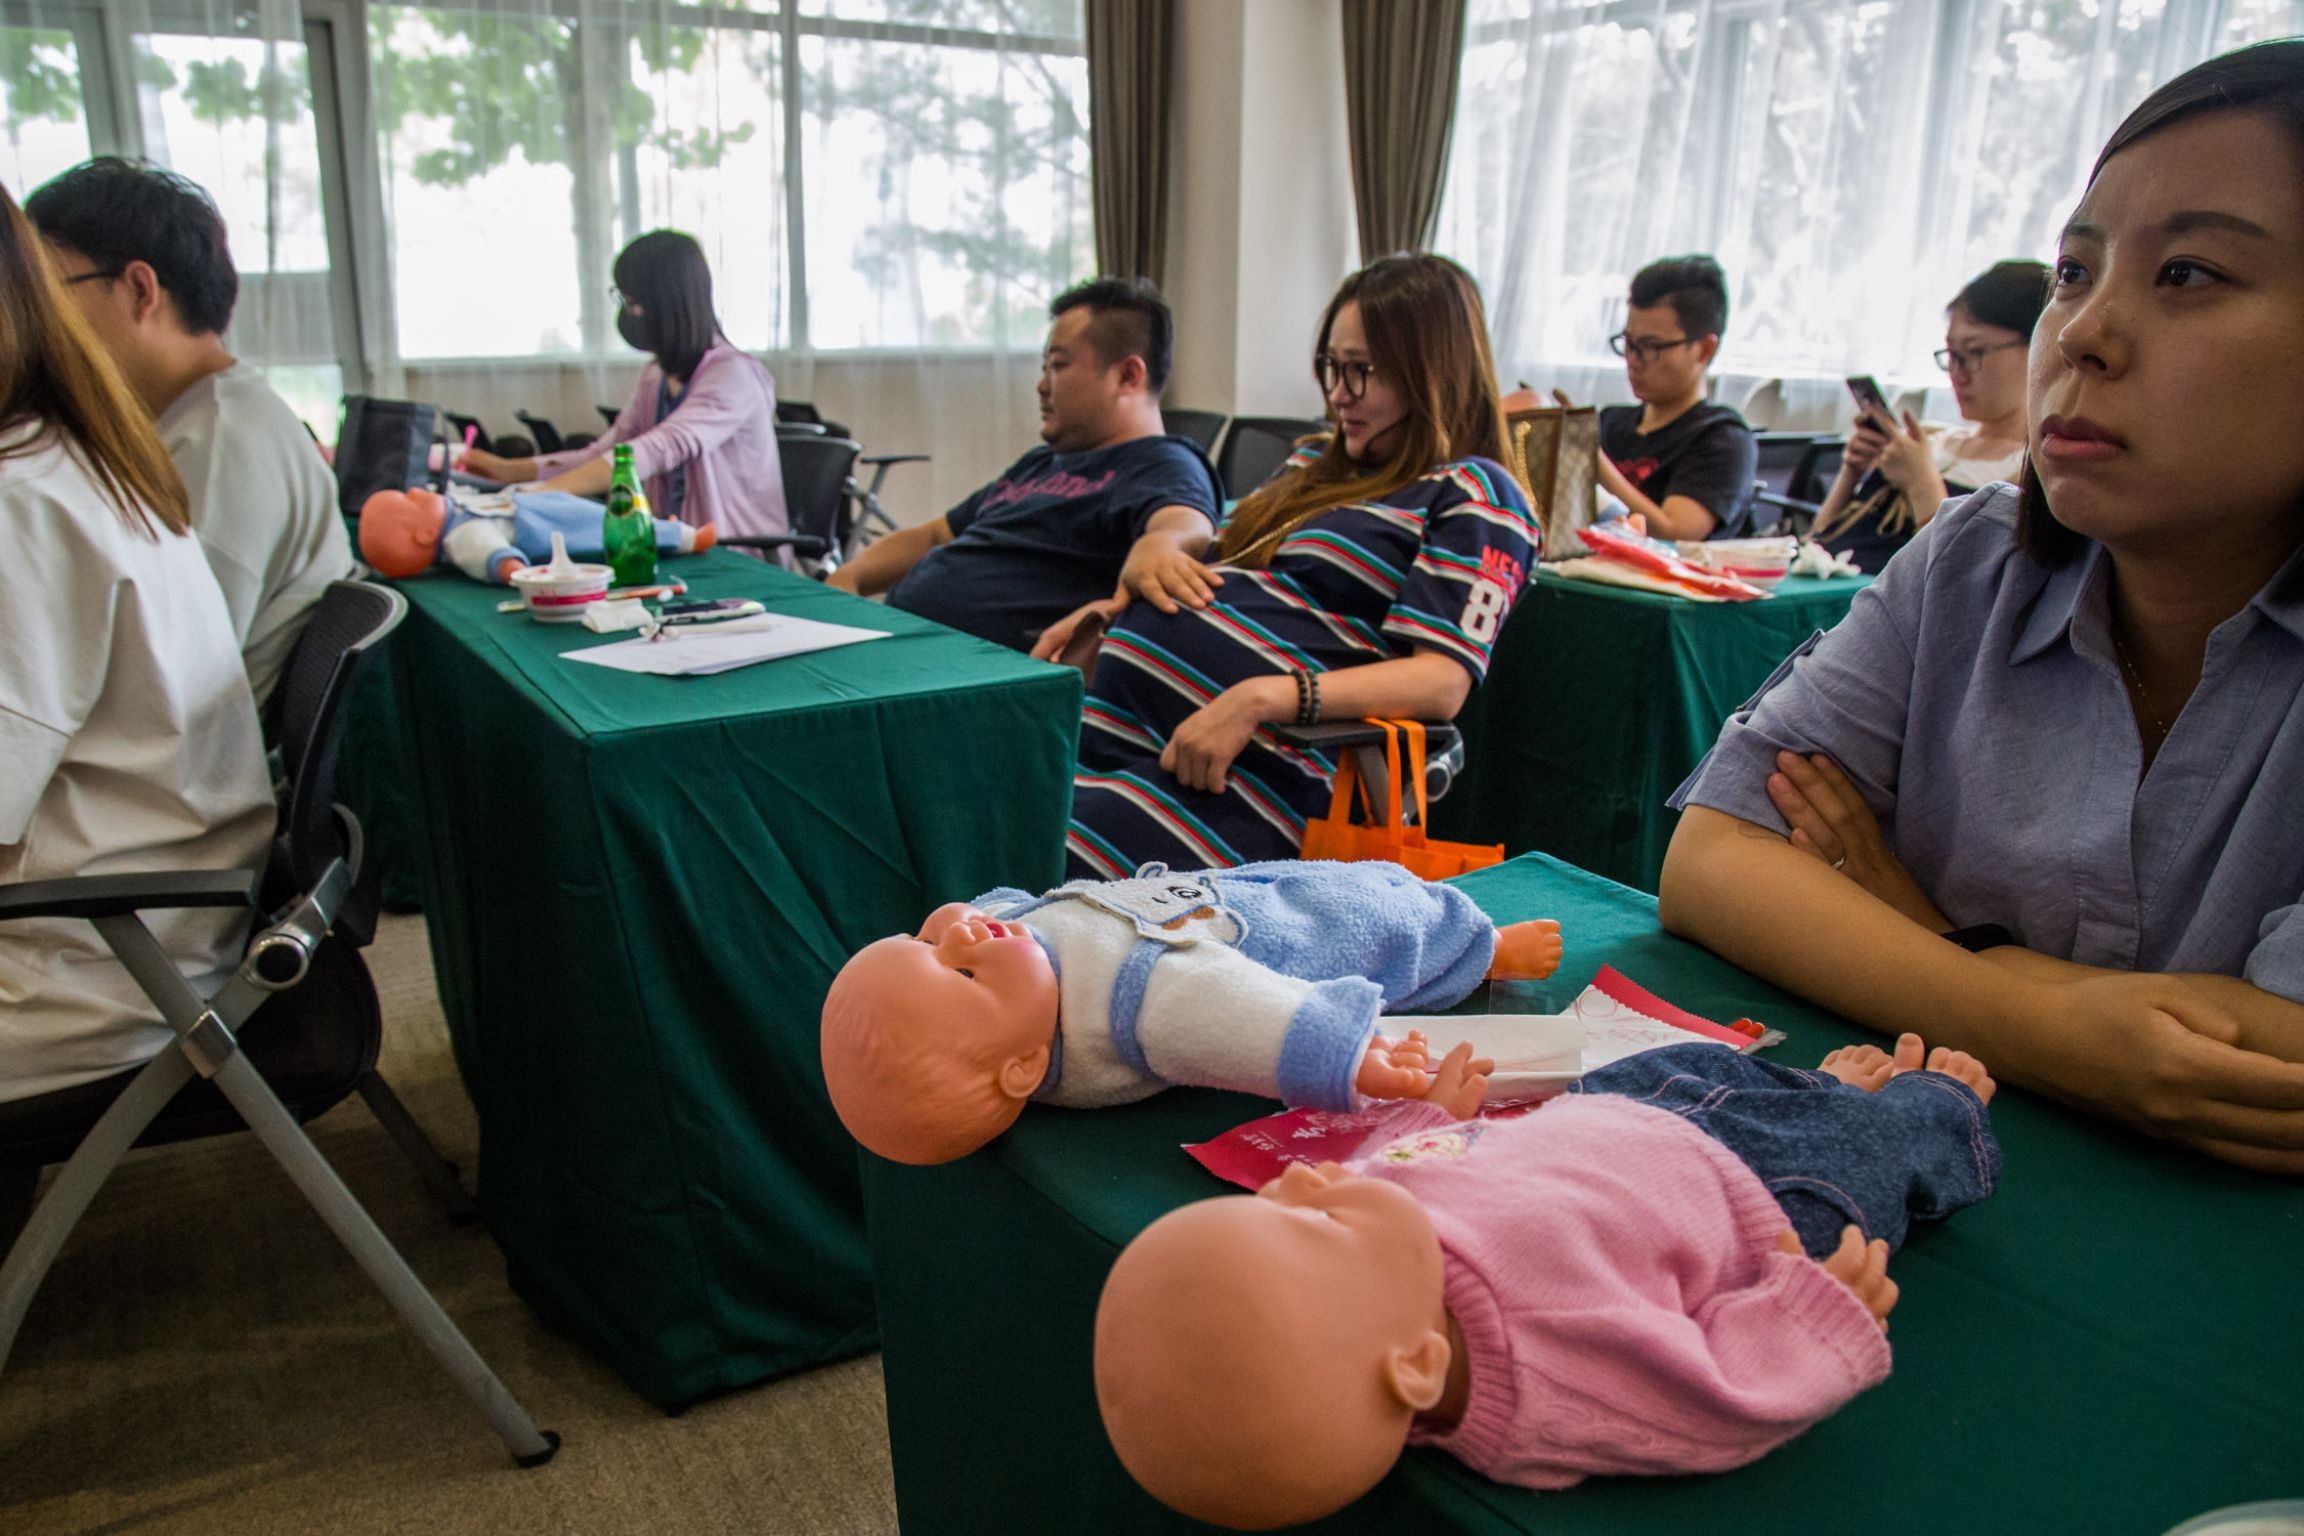 A visibly pregnant woman sits in a parenting class with dolls on the table.